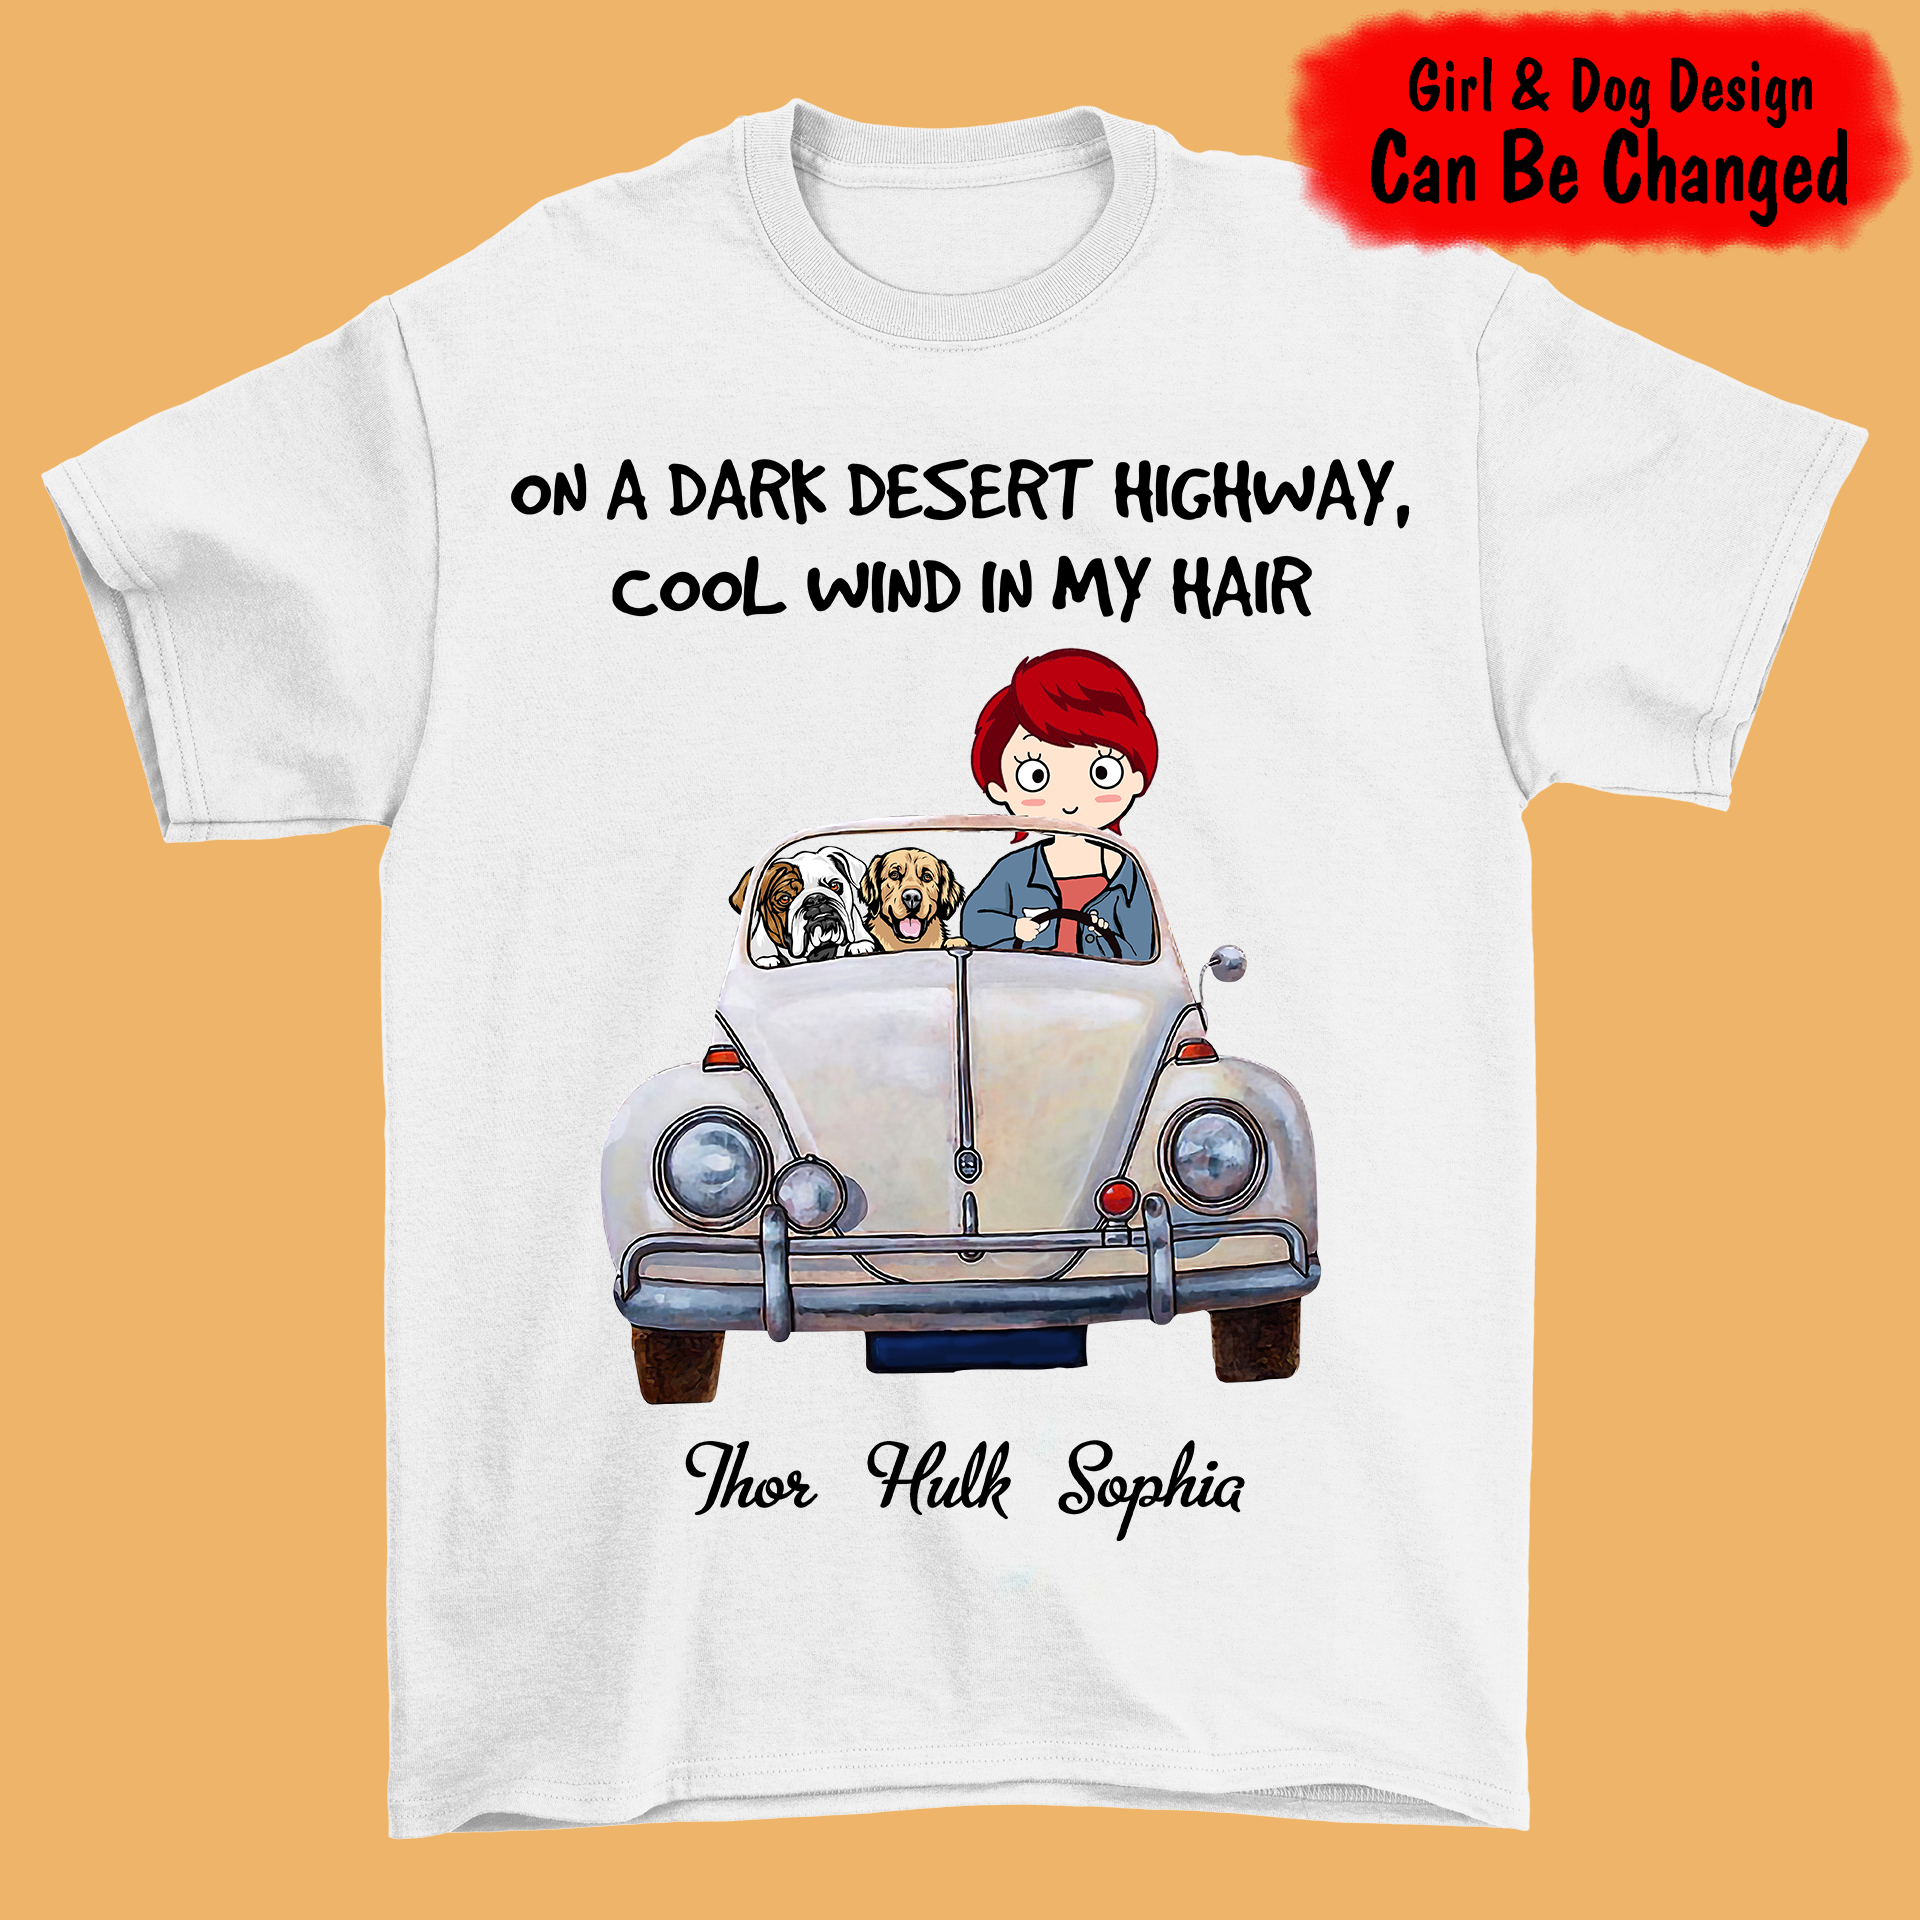 On A Dark Desert Highway, Cool Win In My Hair Personalized Girl & Dog Shirt - HNT8081